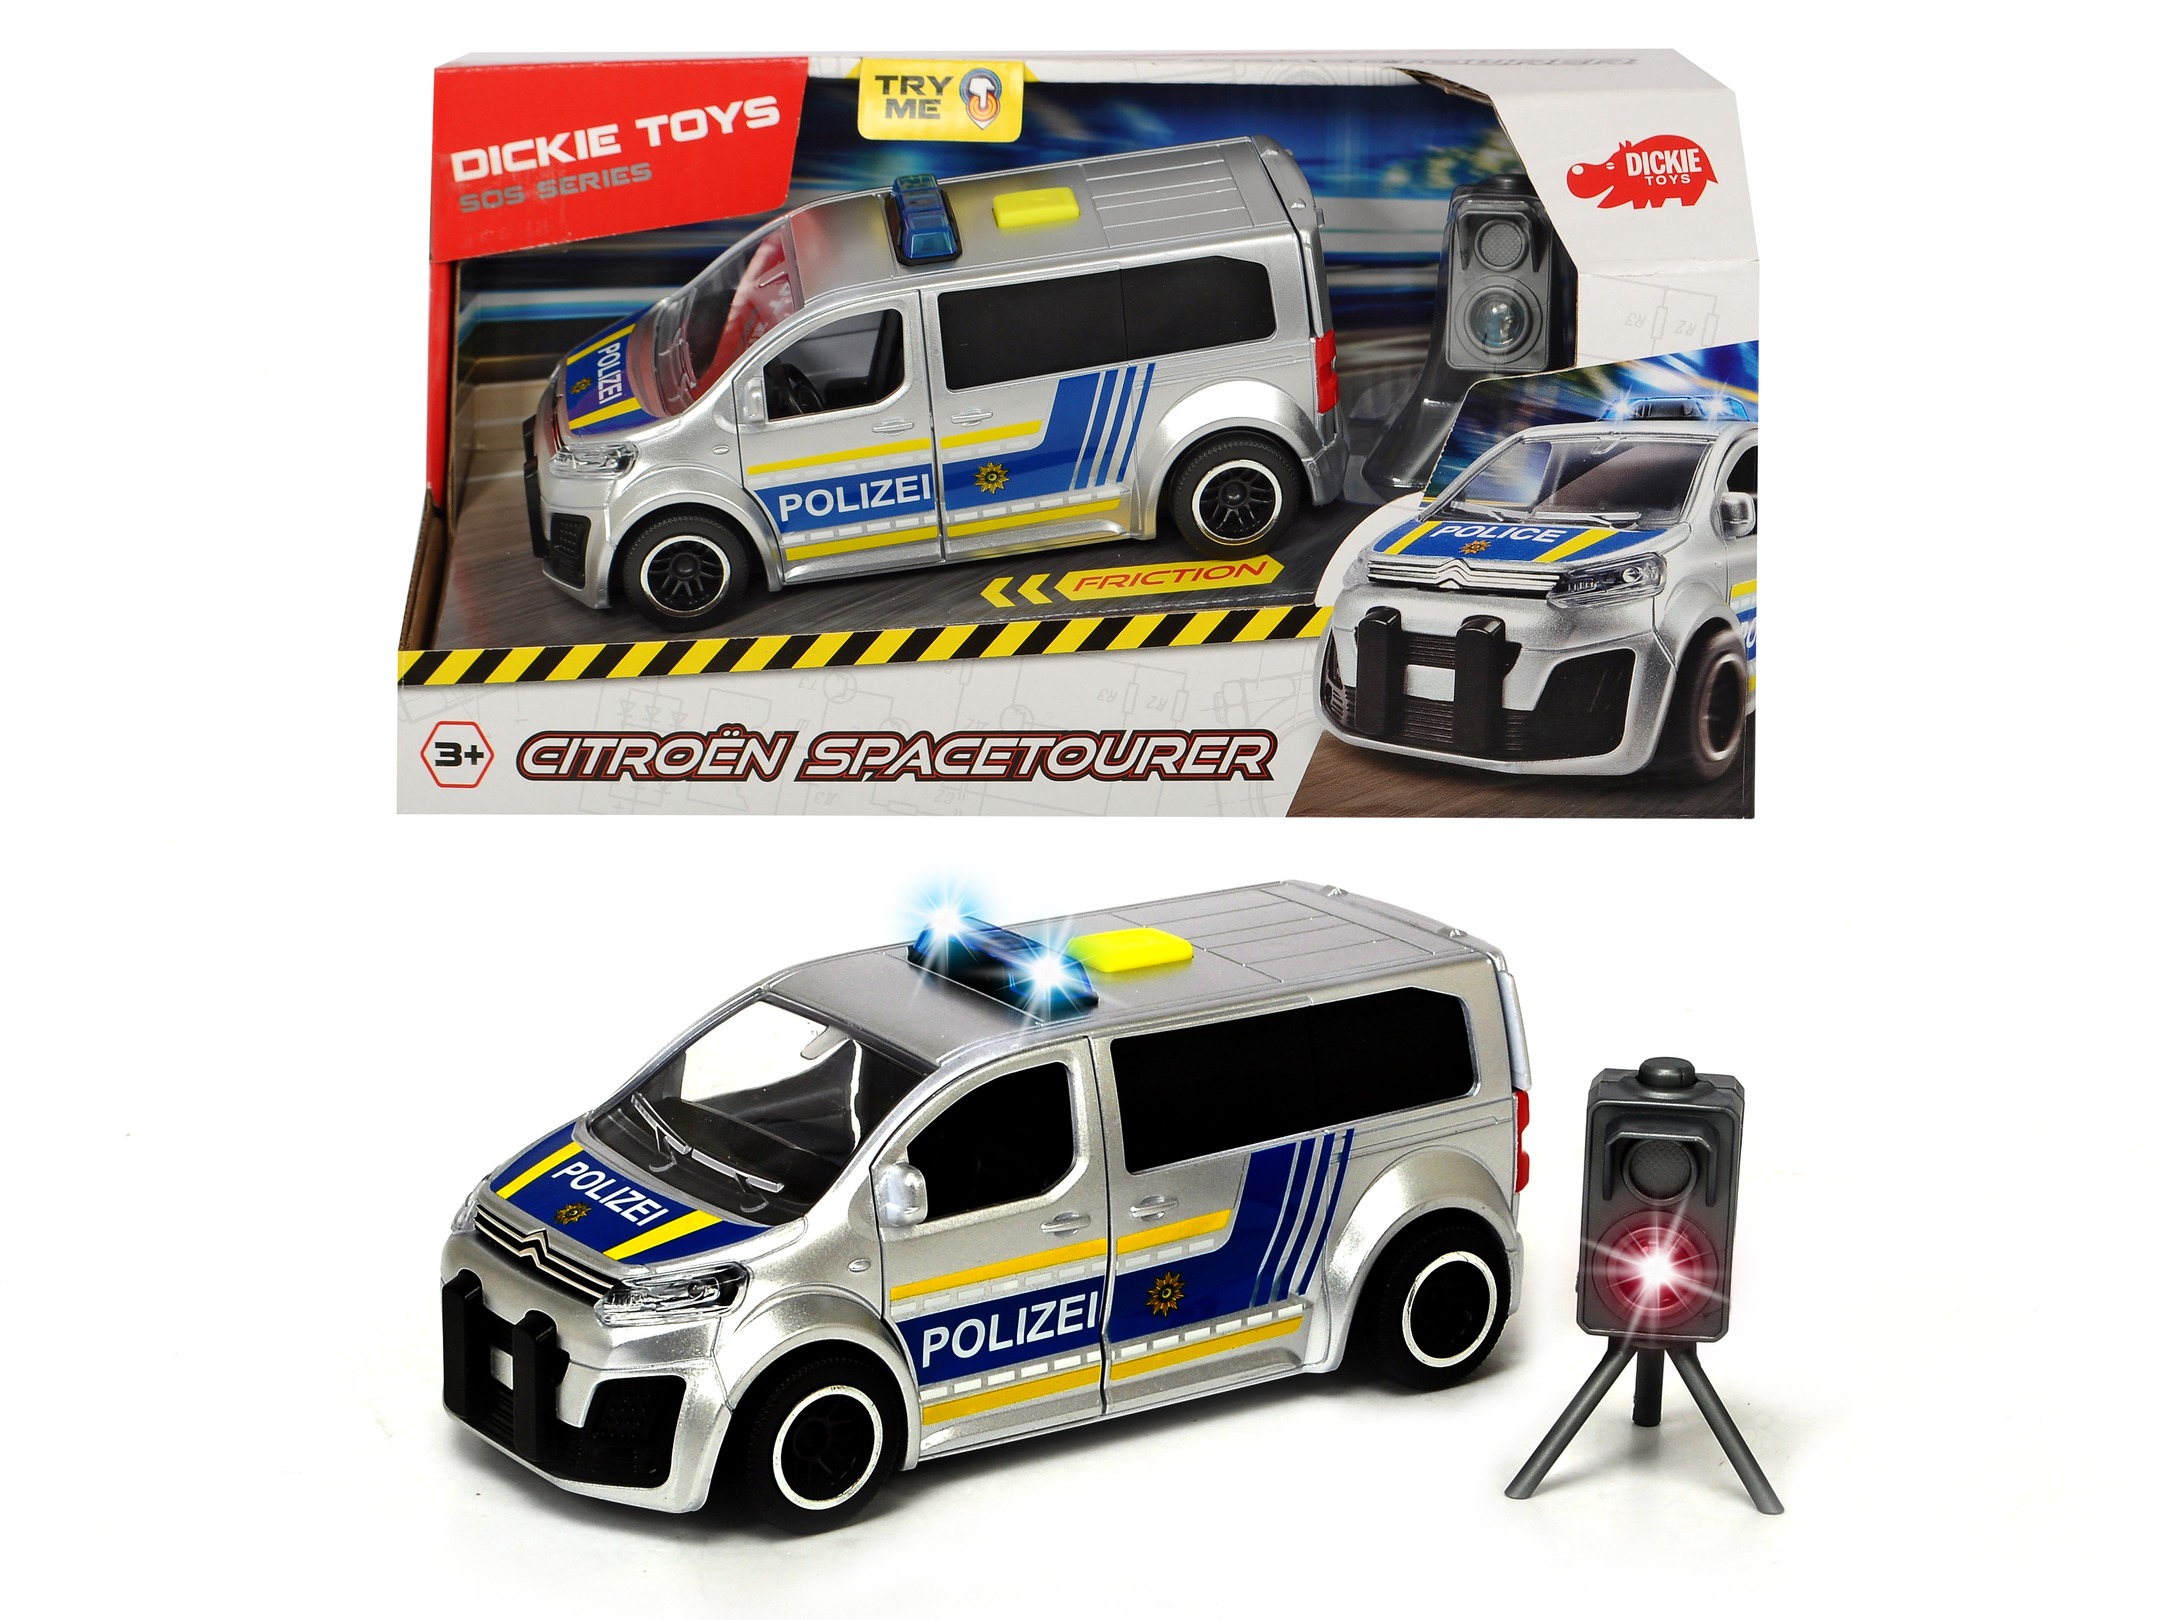 Citroën SpaceTourer - Polizei